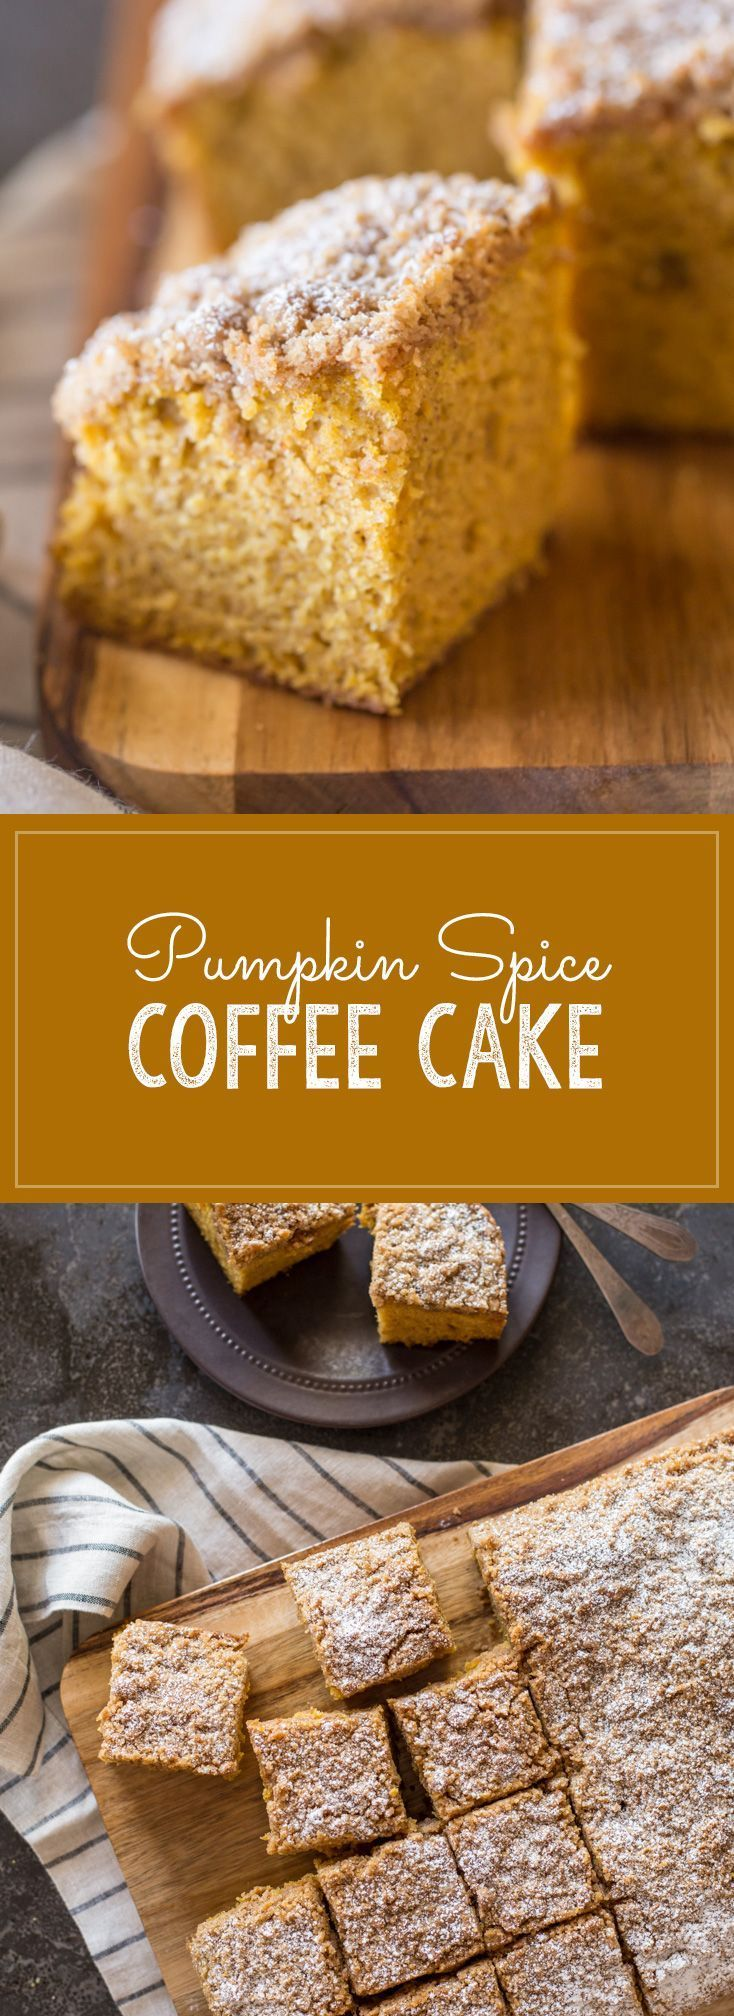 So moist and delicious, this Pumpkin Spice Coffee Cake is